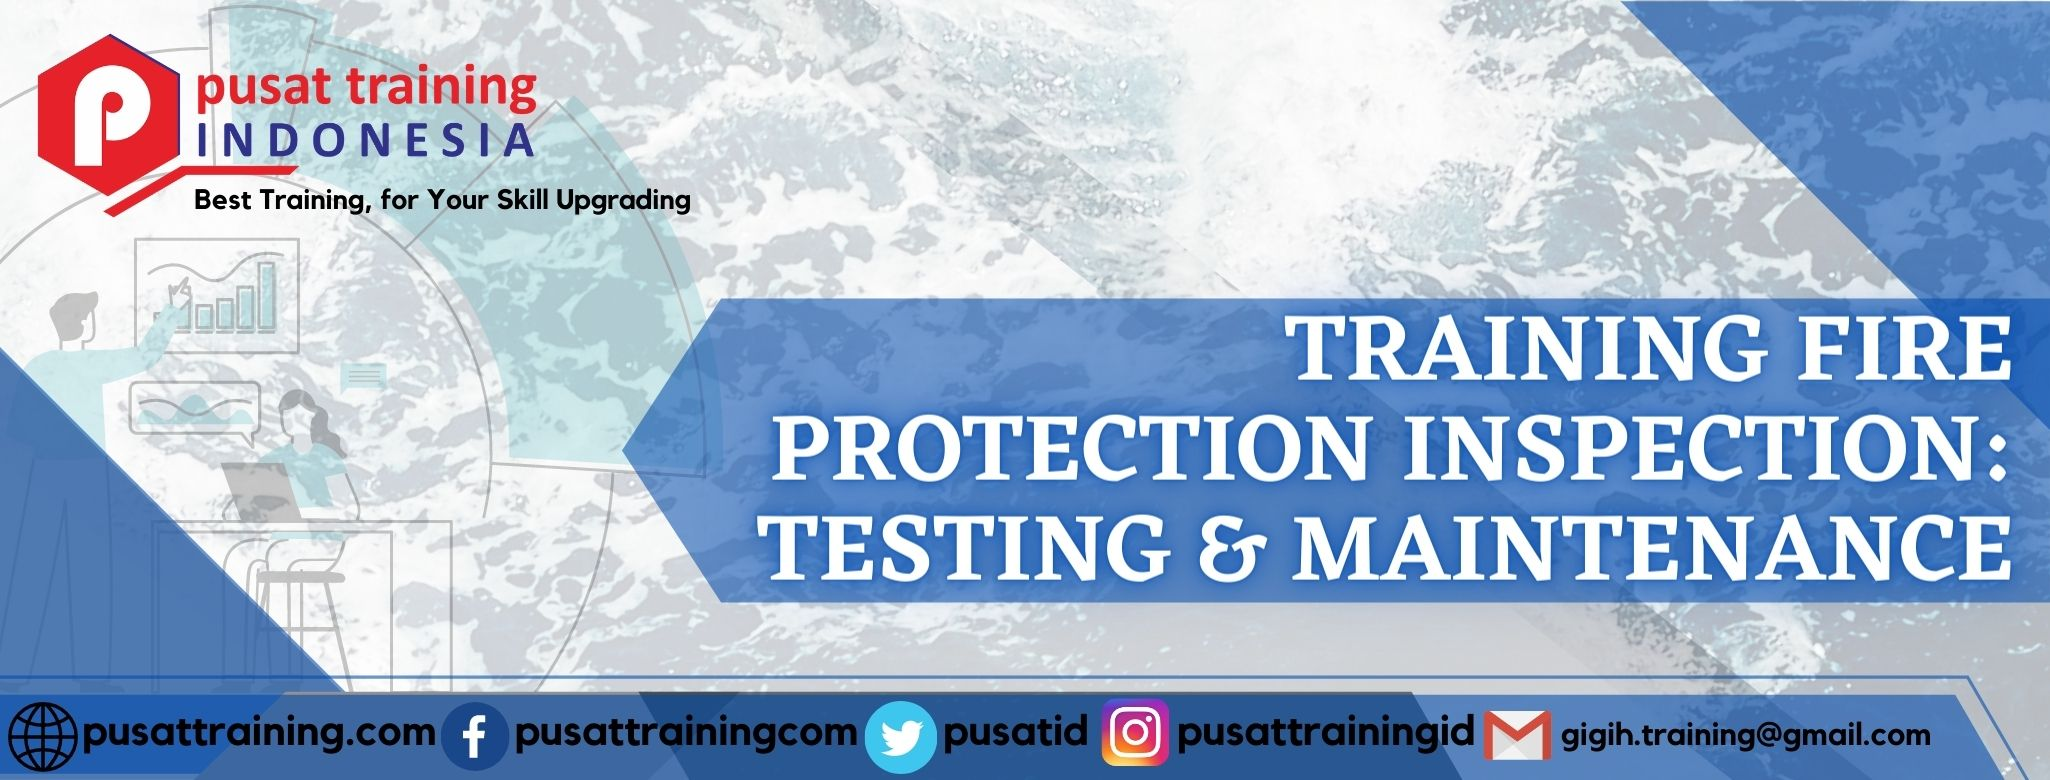 training-fire-protection-inspection-testing-maintenance